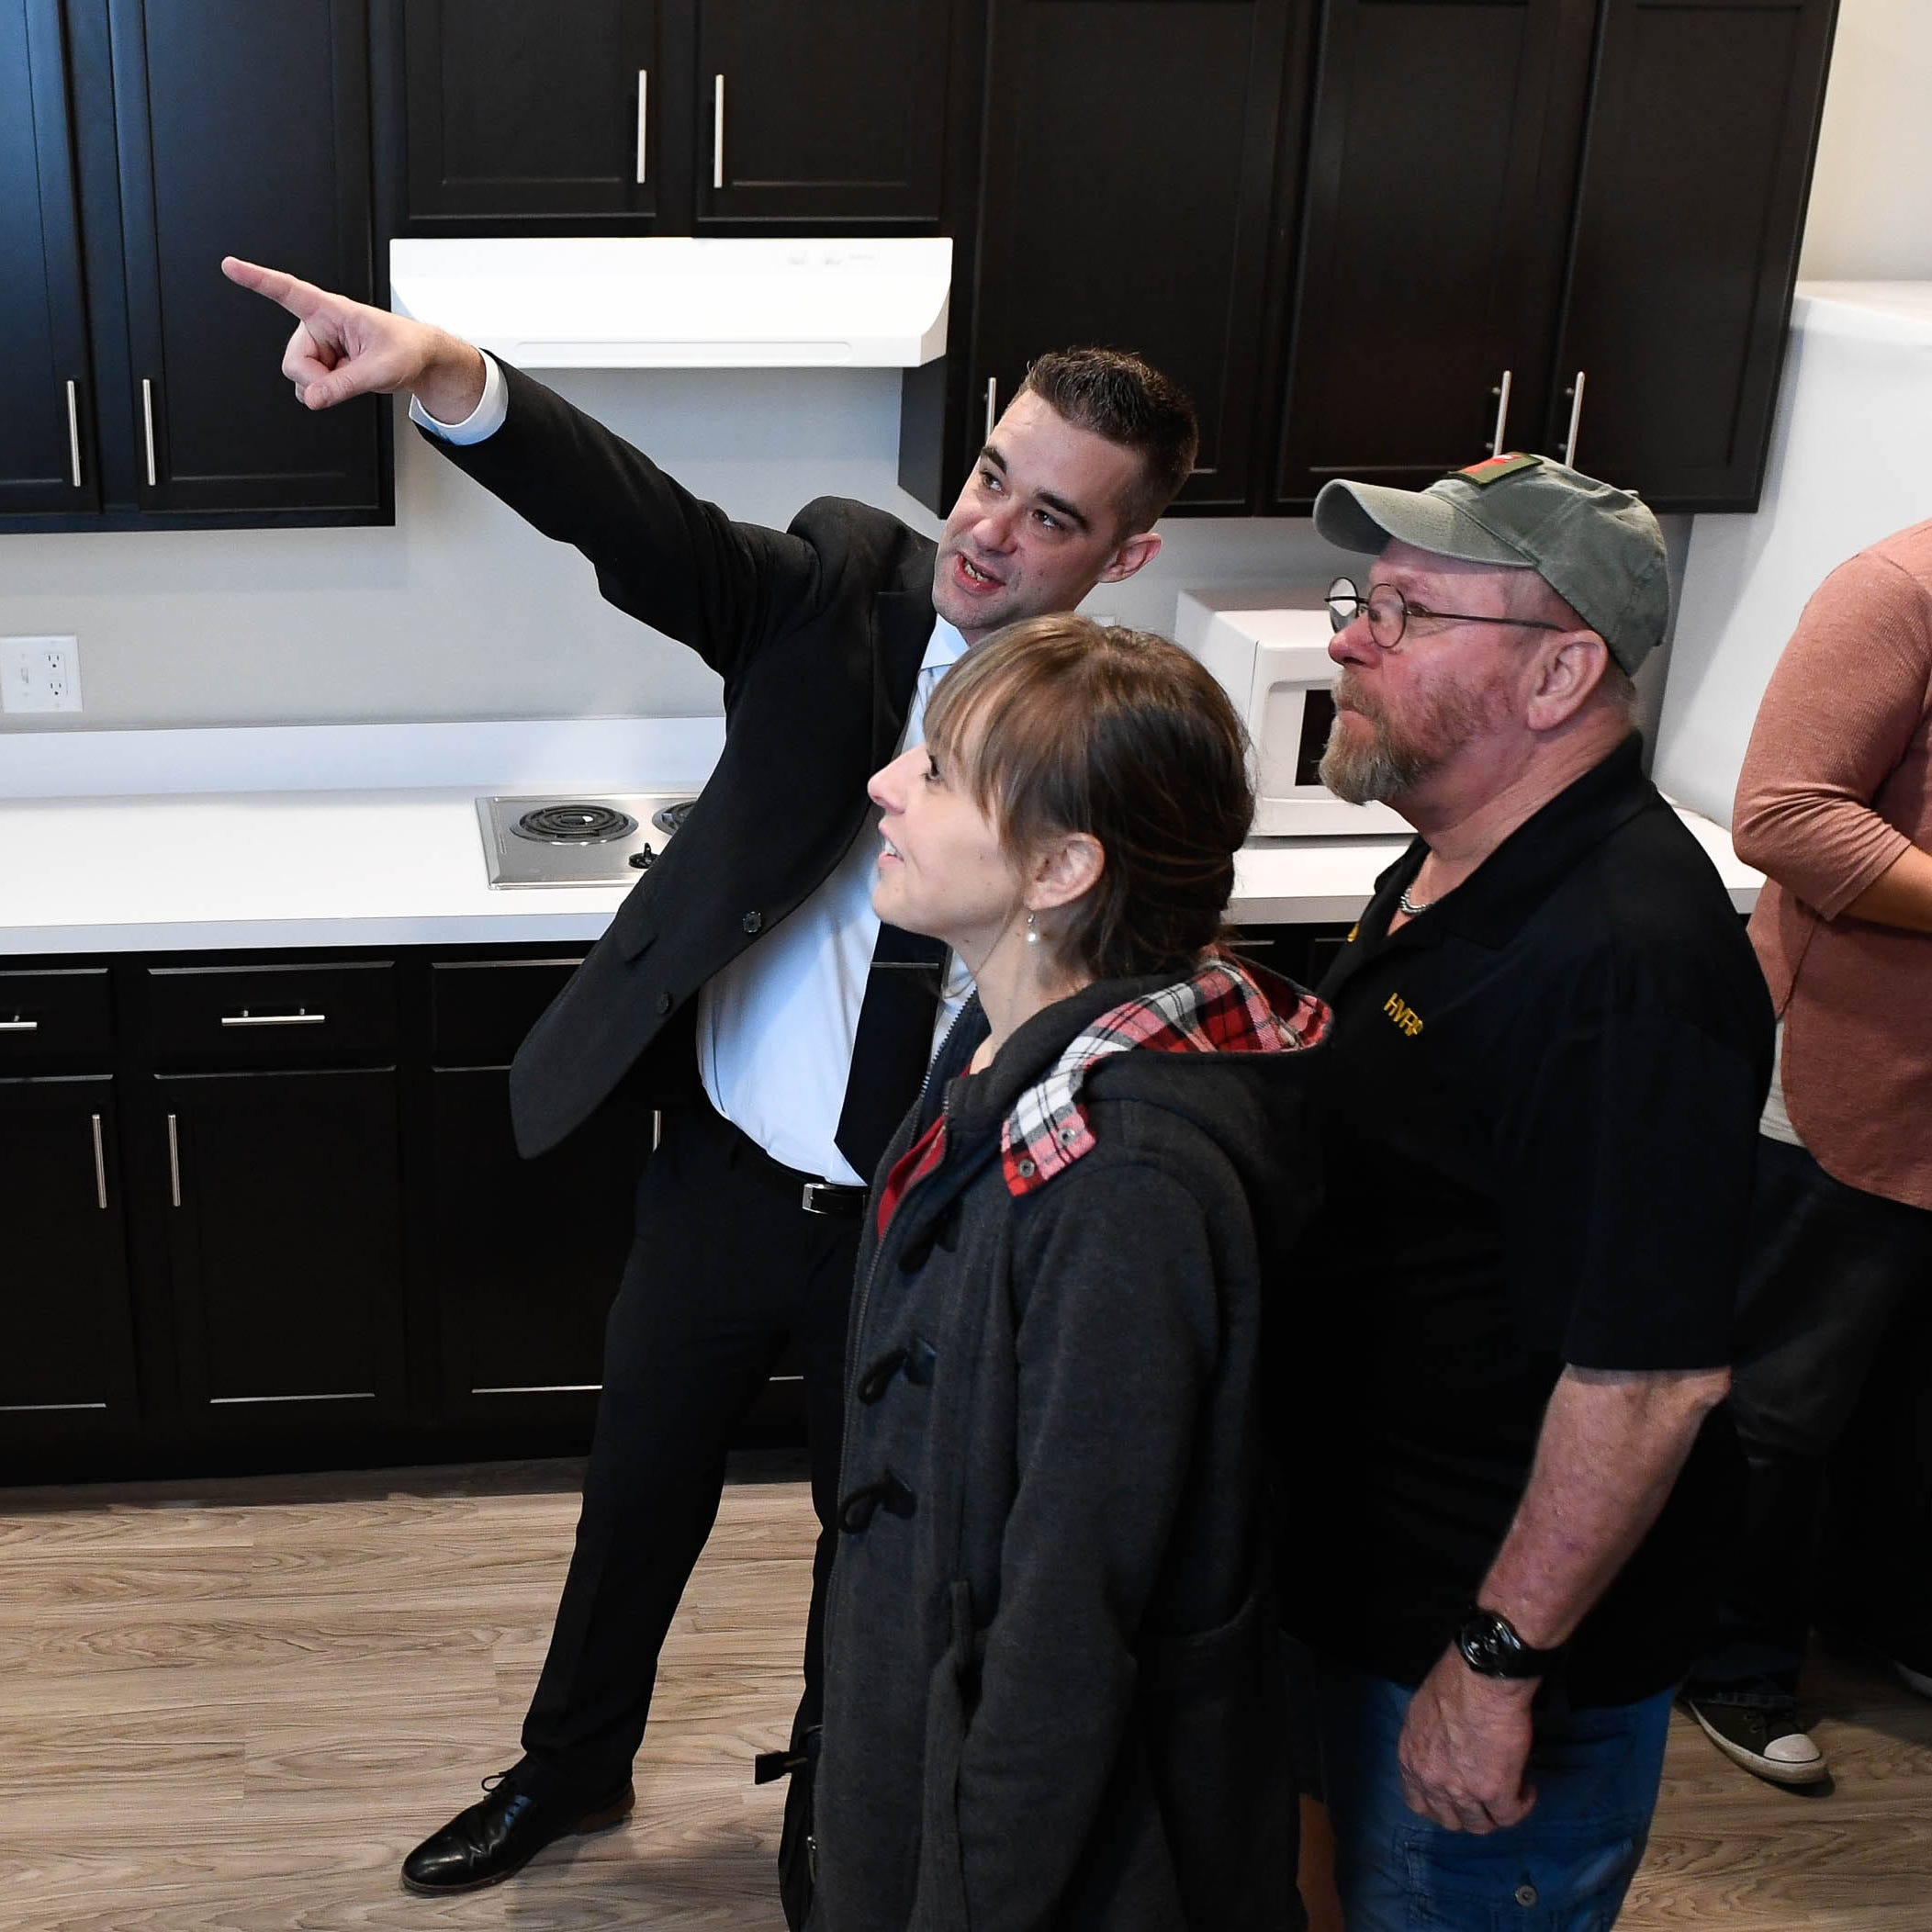 After 3 years of planning, construction, Garvin Lofts opens in Evansville